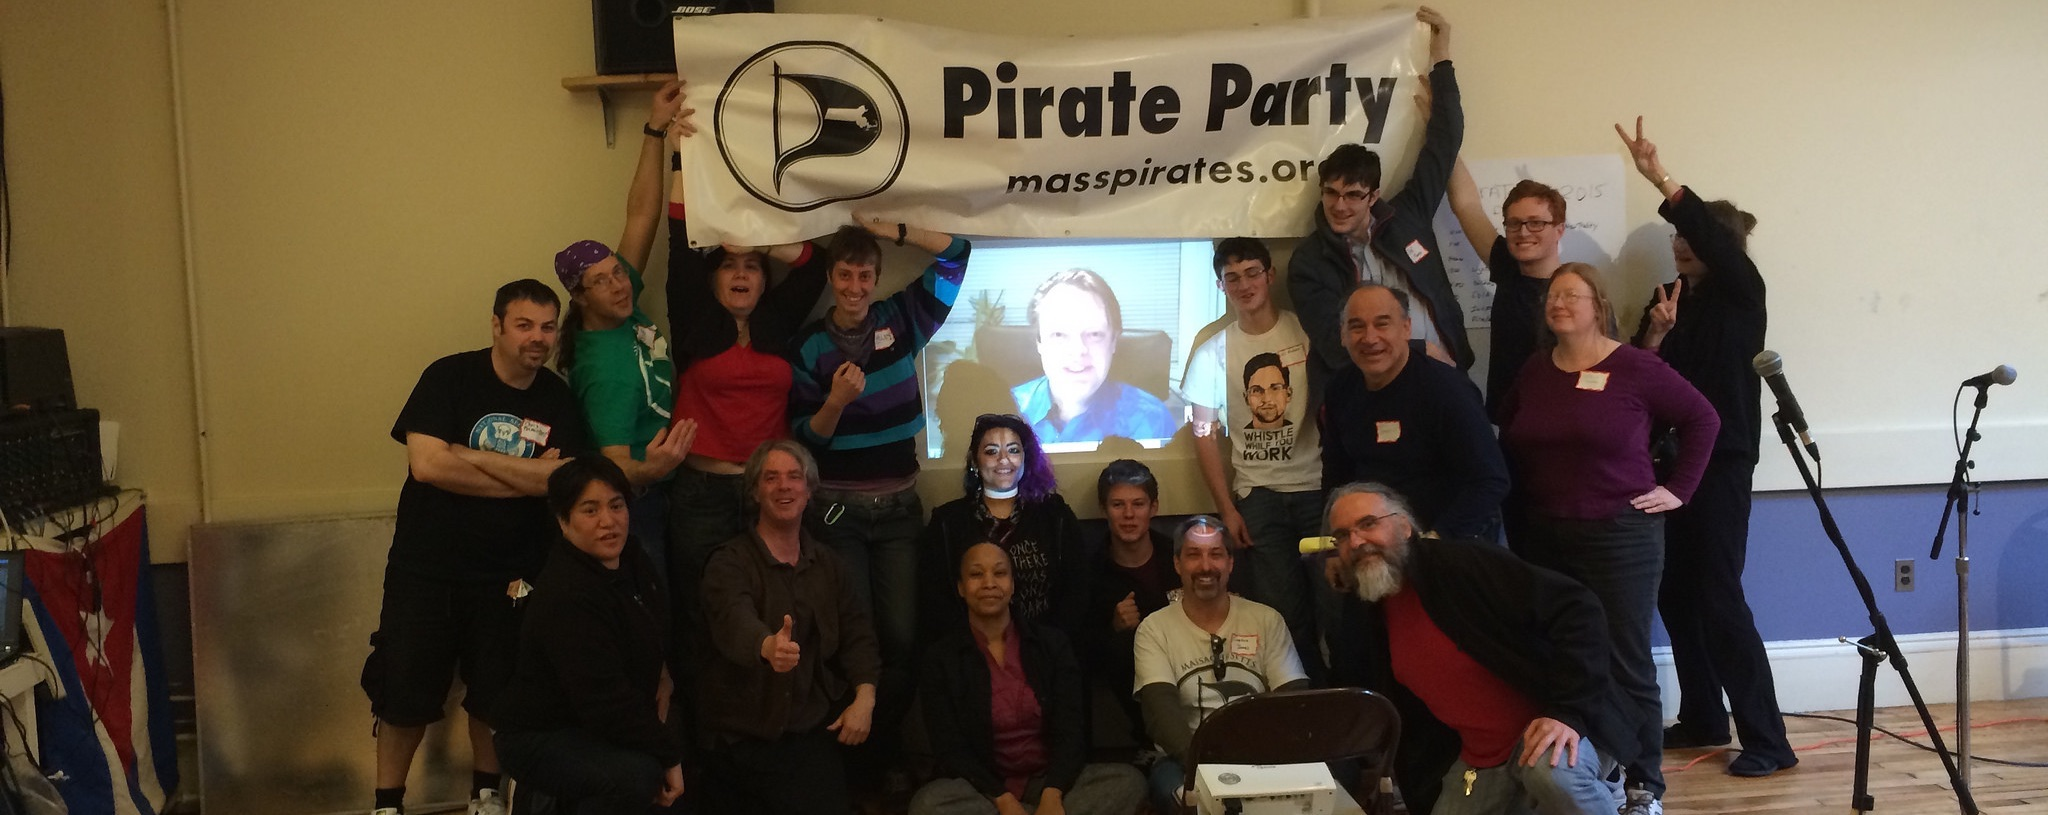 Share your suggestions for PirateCon 2015